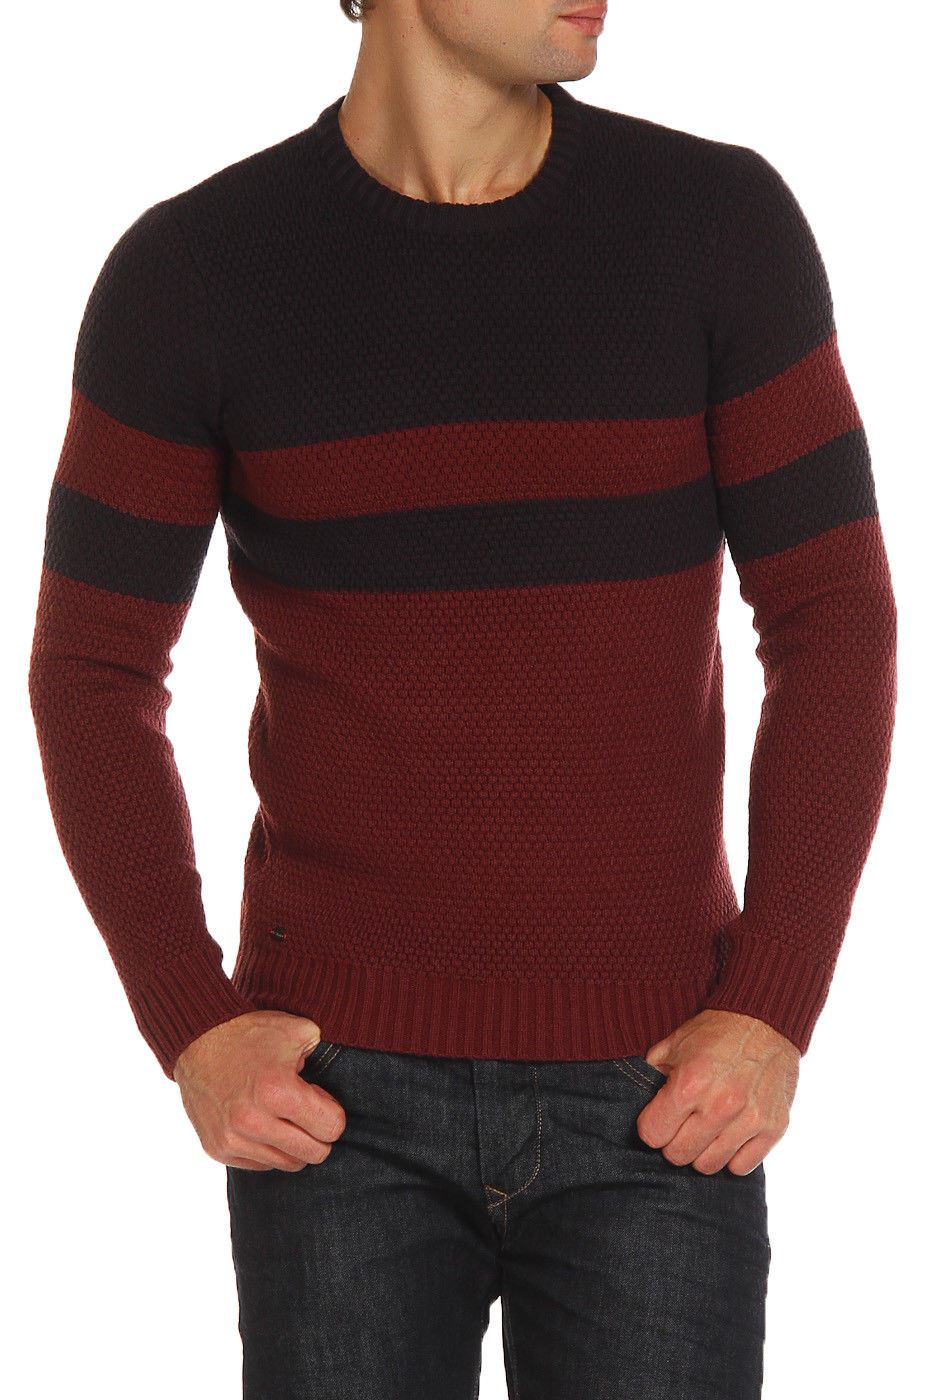 Le-Shark-Designer-Mens-Jumper-Crew-Neck-Wool-Fashion-Knitwear-Sweater thumbnail 3